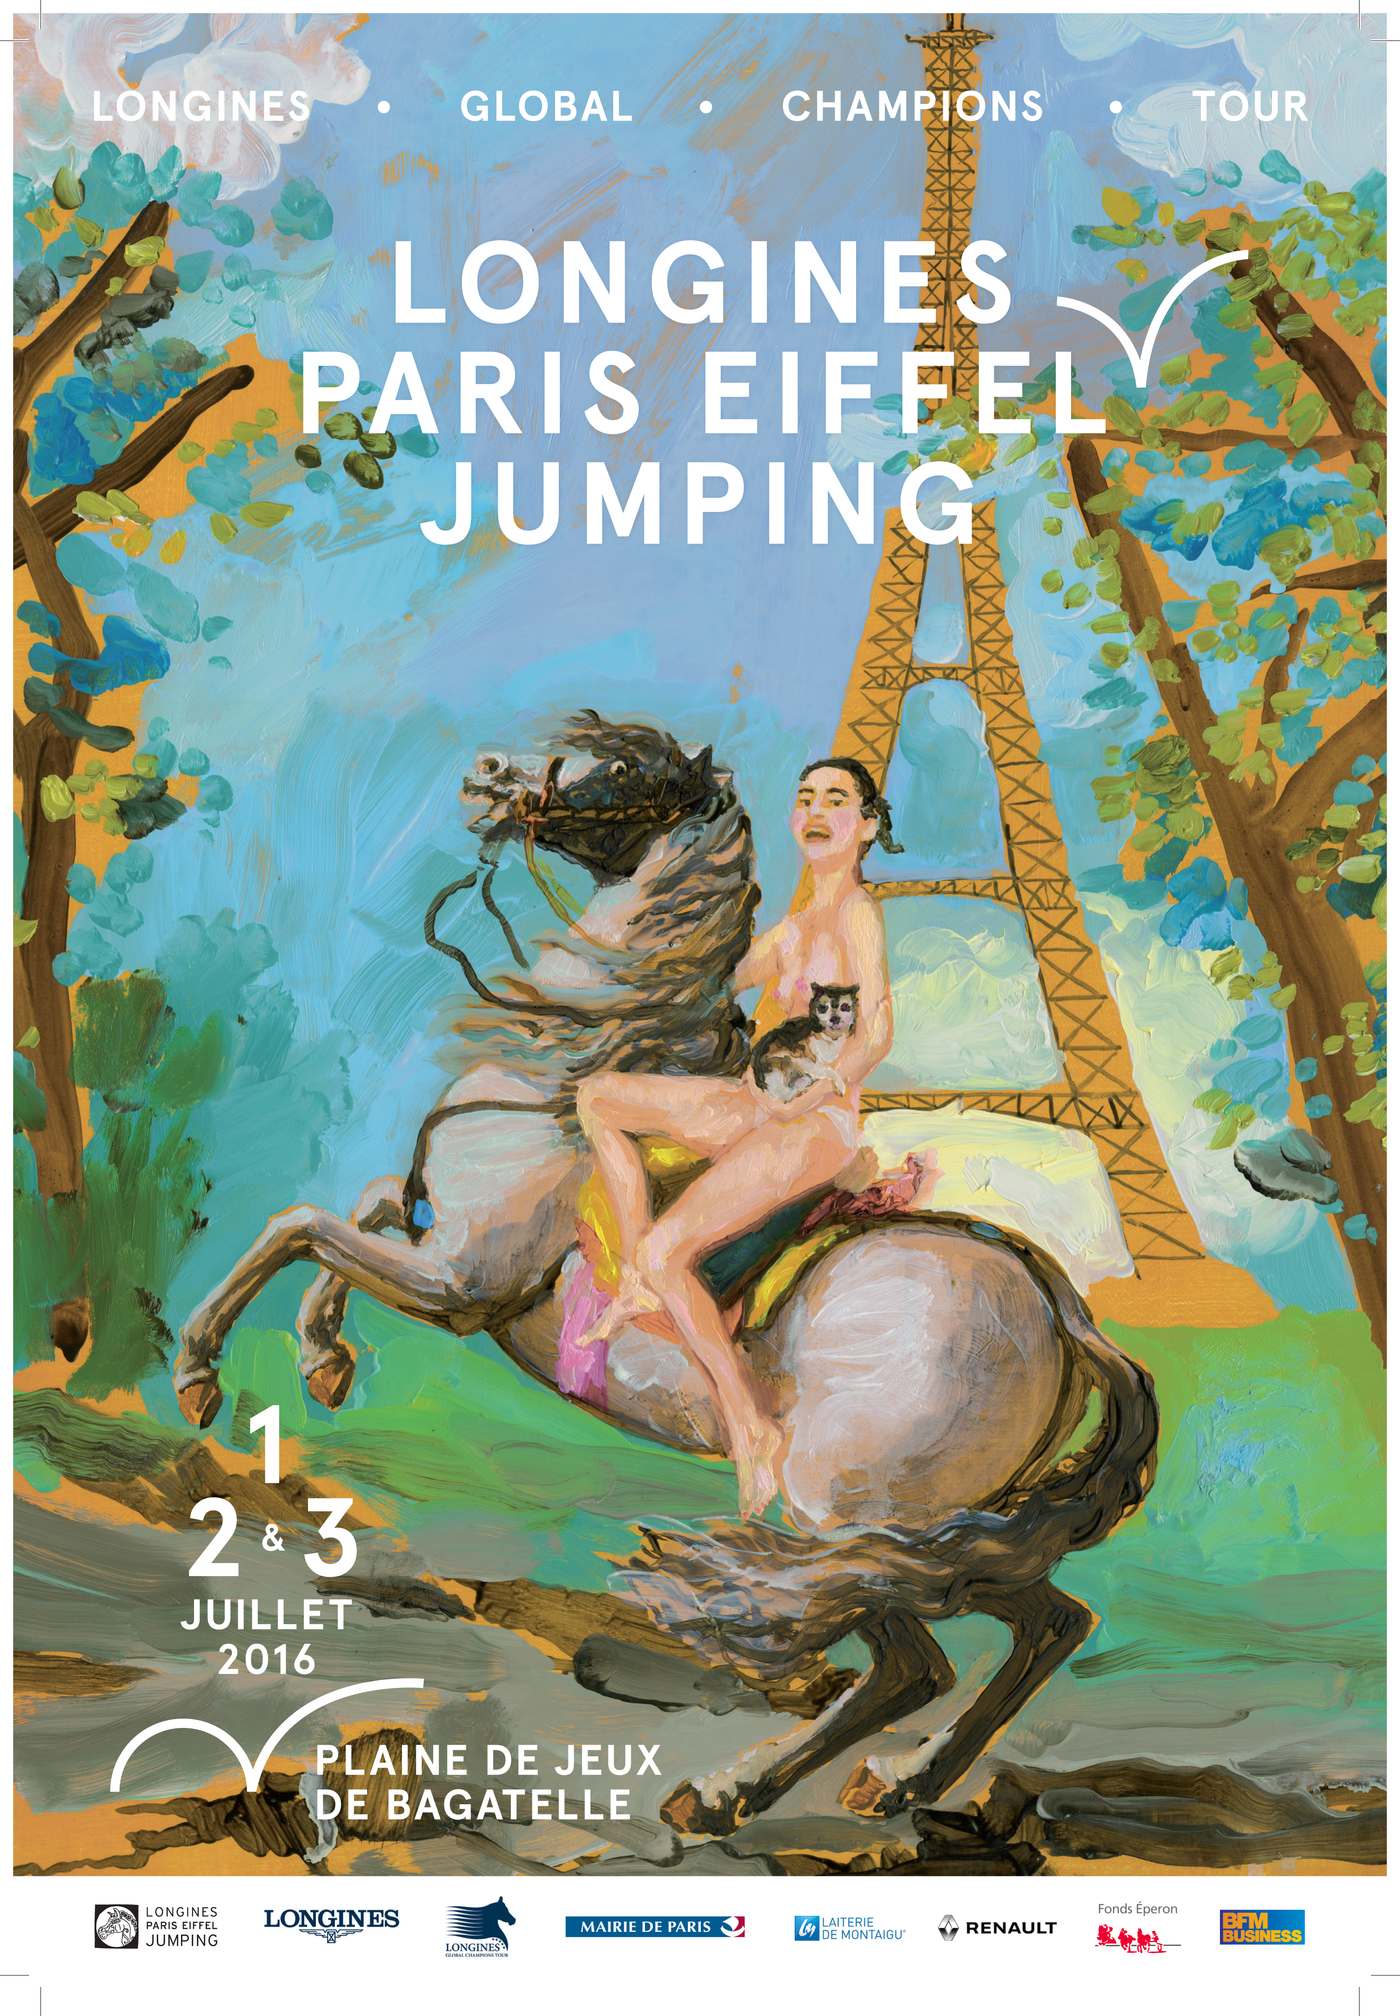 Longines Show Jumping Event: A subtle mix of high-level sport and elegance for the next Longines Paris Eiffel Jumping 2